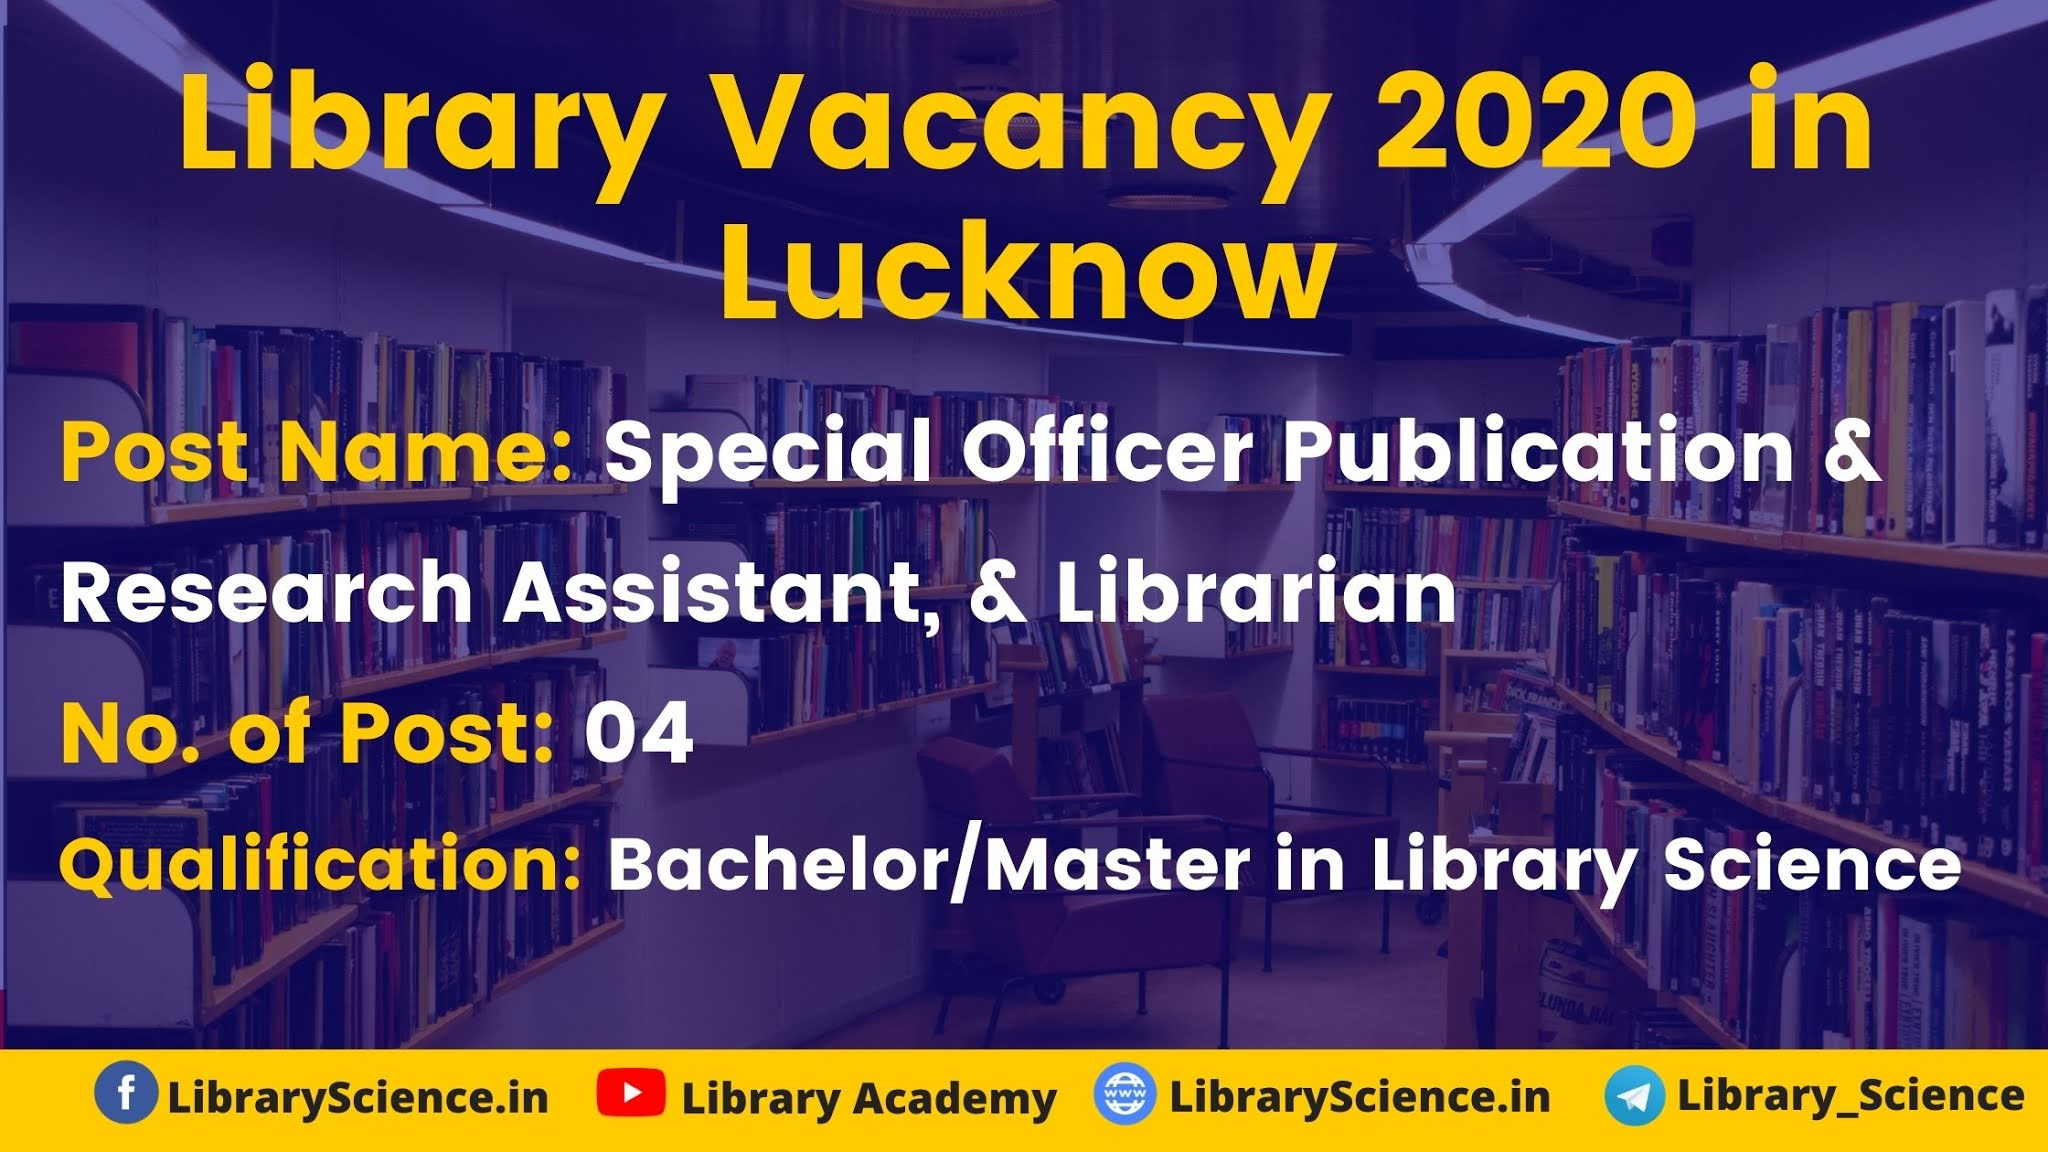 Library vacancy 2020 in Lucknow